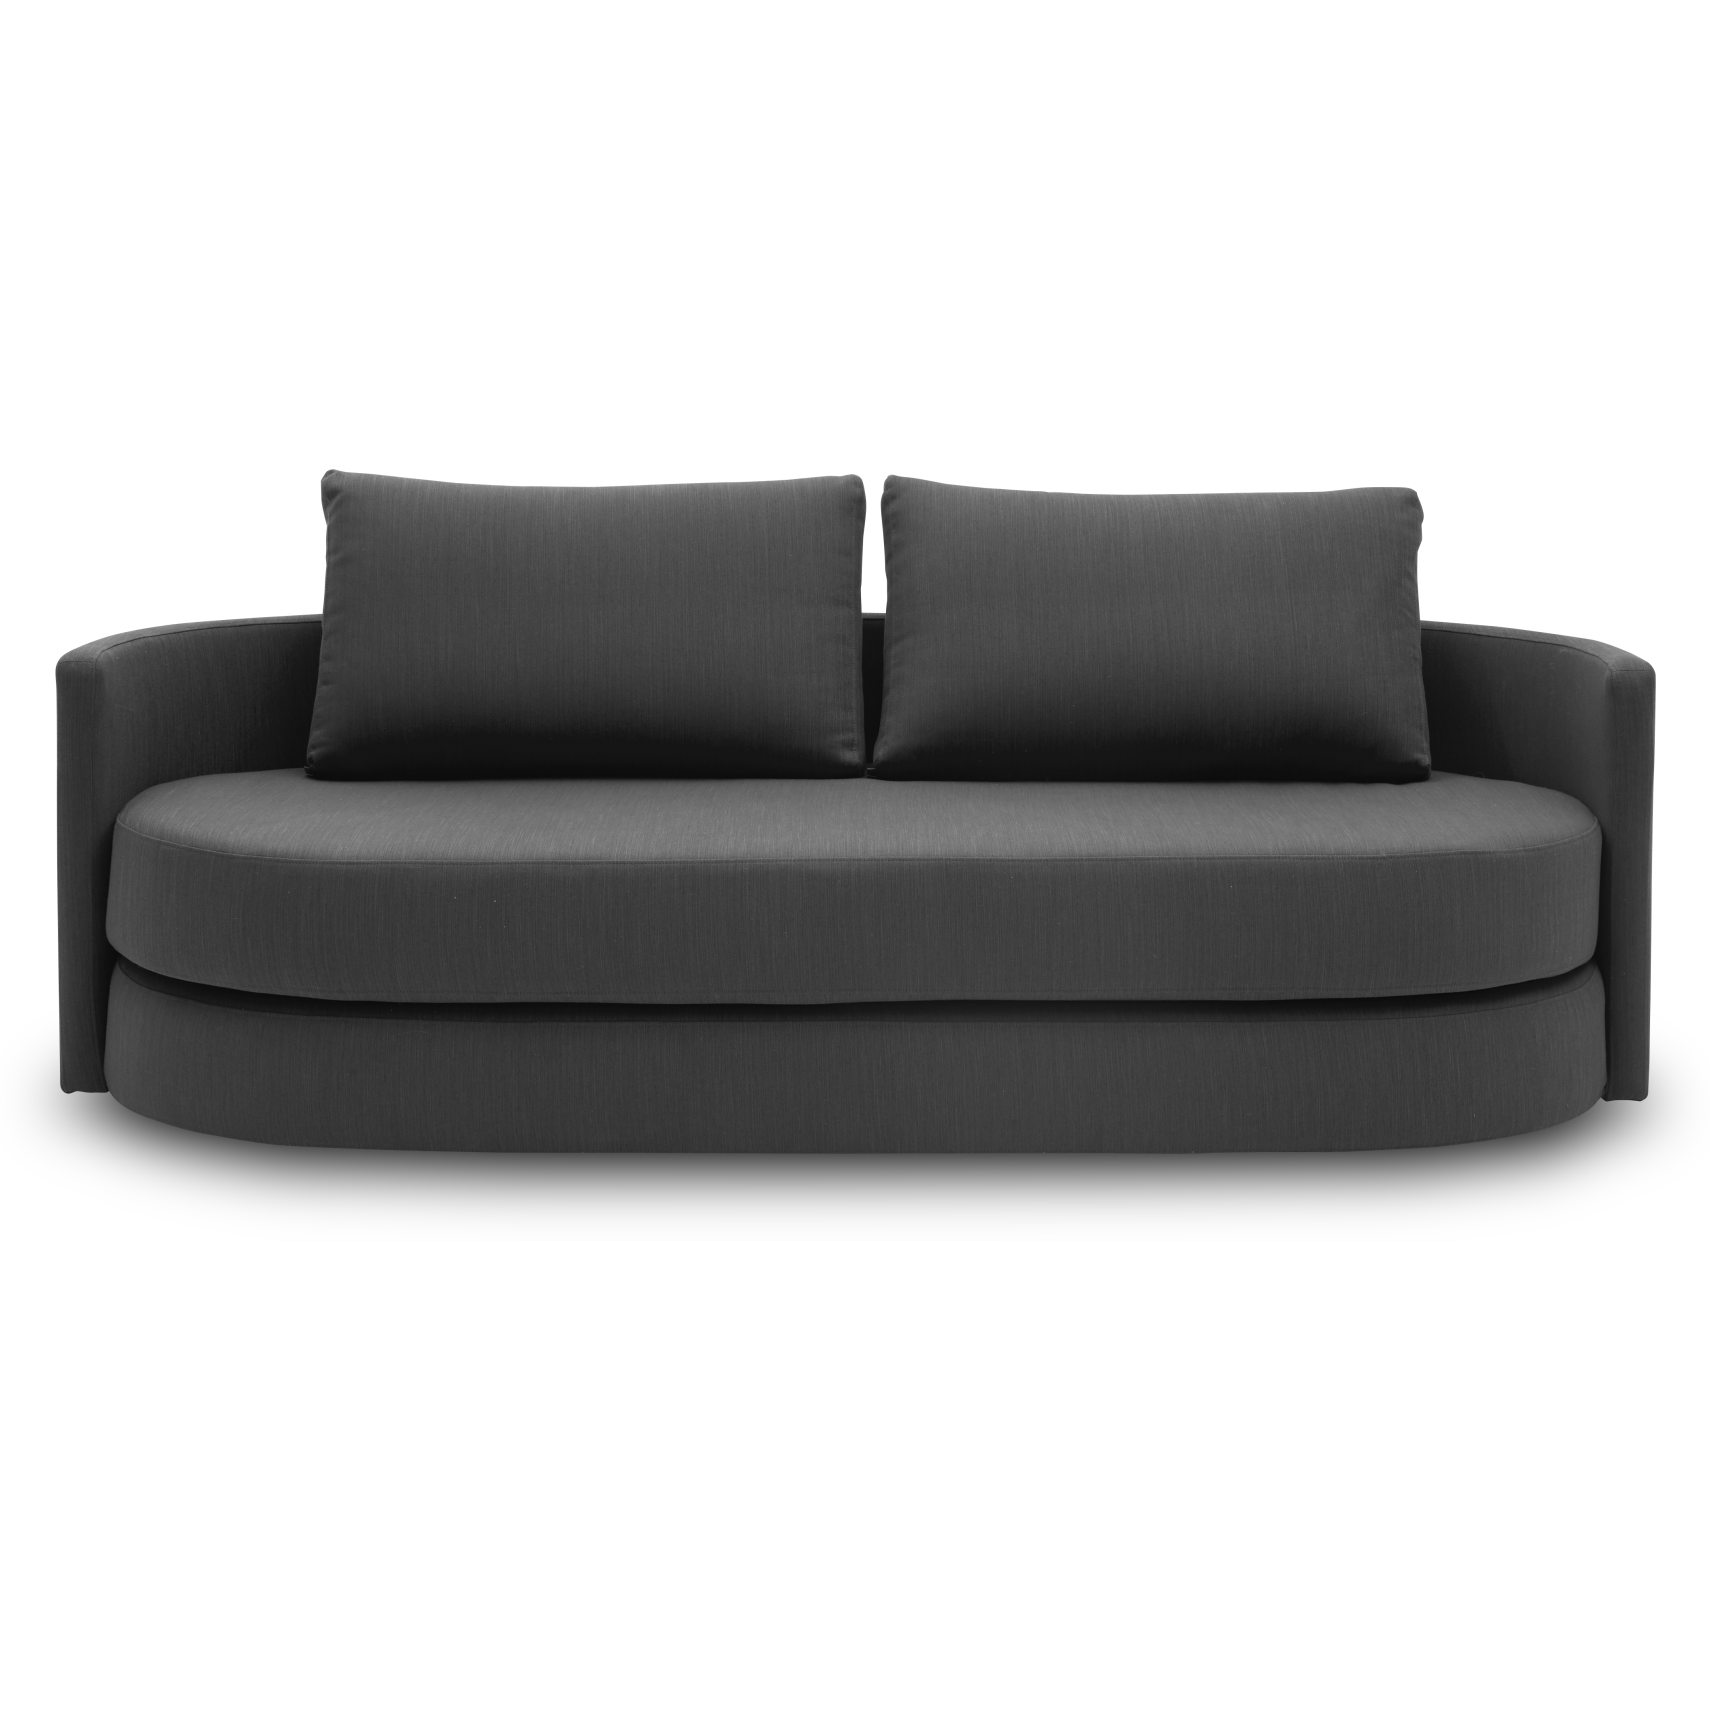 Innovation Living - Vile Sovesofa - Elegance 509 Anthracite Grey stof og pocketspring madras